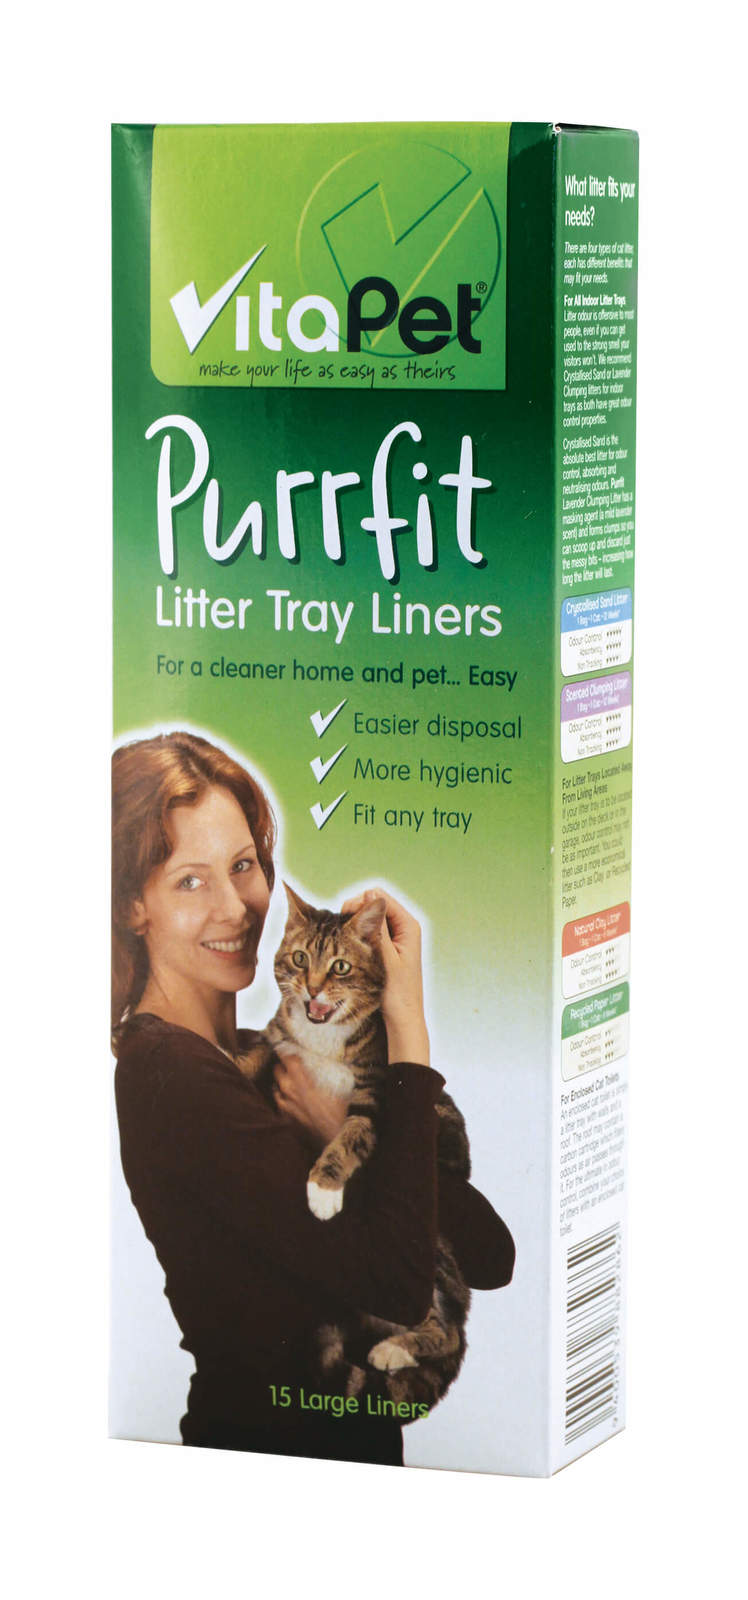 Vitapet: Litter Tray Liners (15 Pack) image